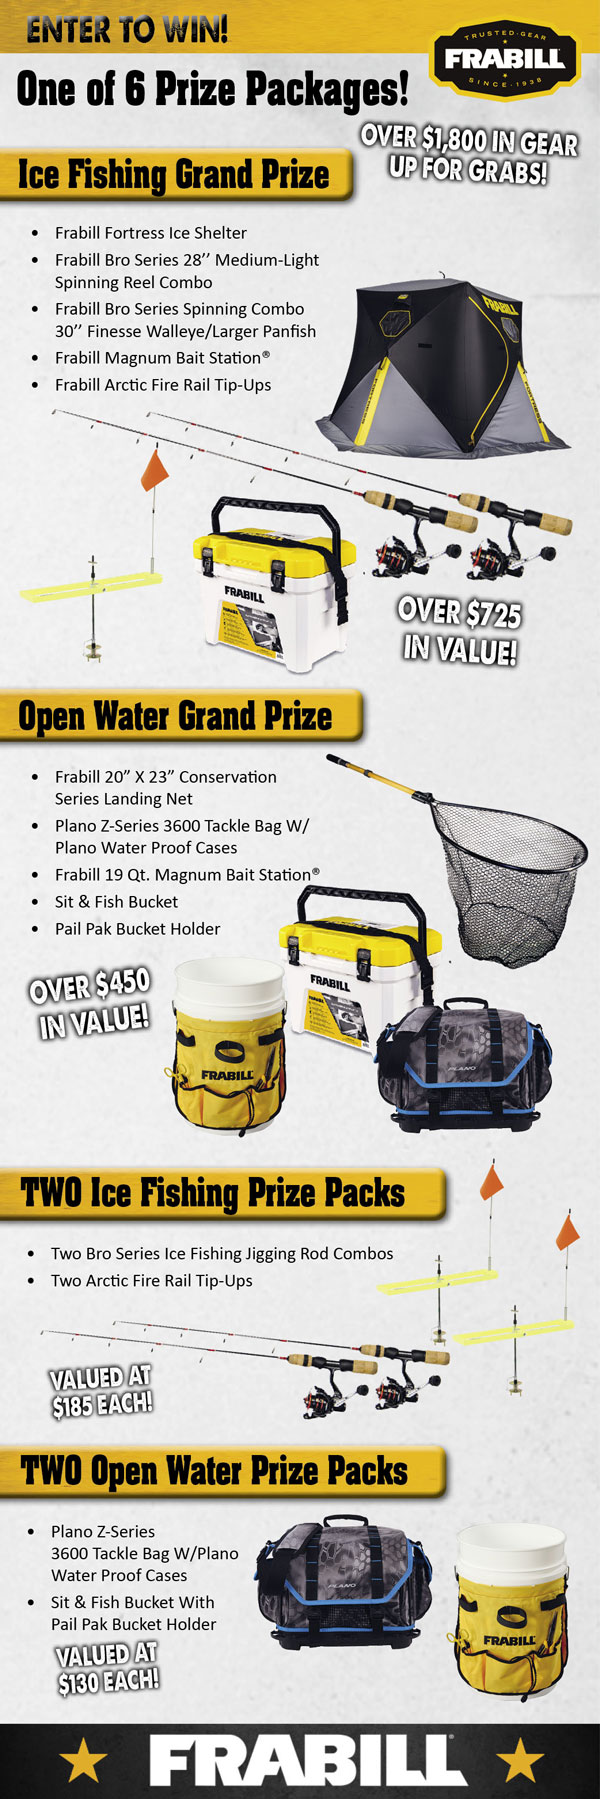 Enter To Win One Of 6 Fishing Prize Packs From Plano And